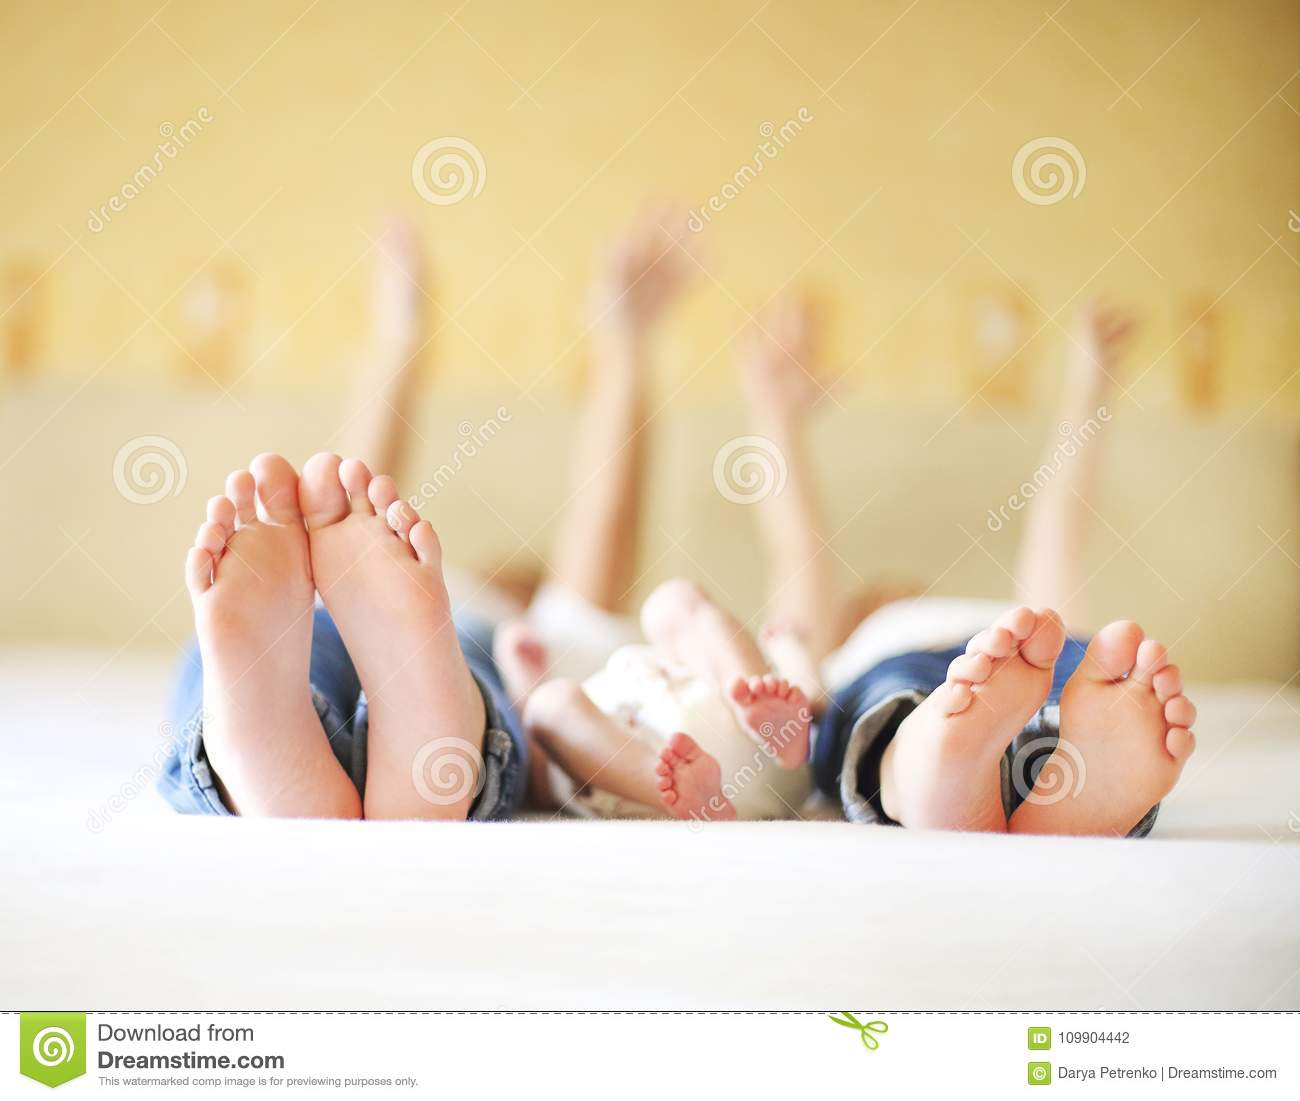 Sweet family in bed. Three sisters, close up on feet